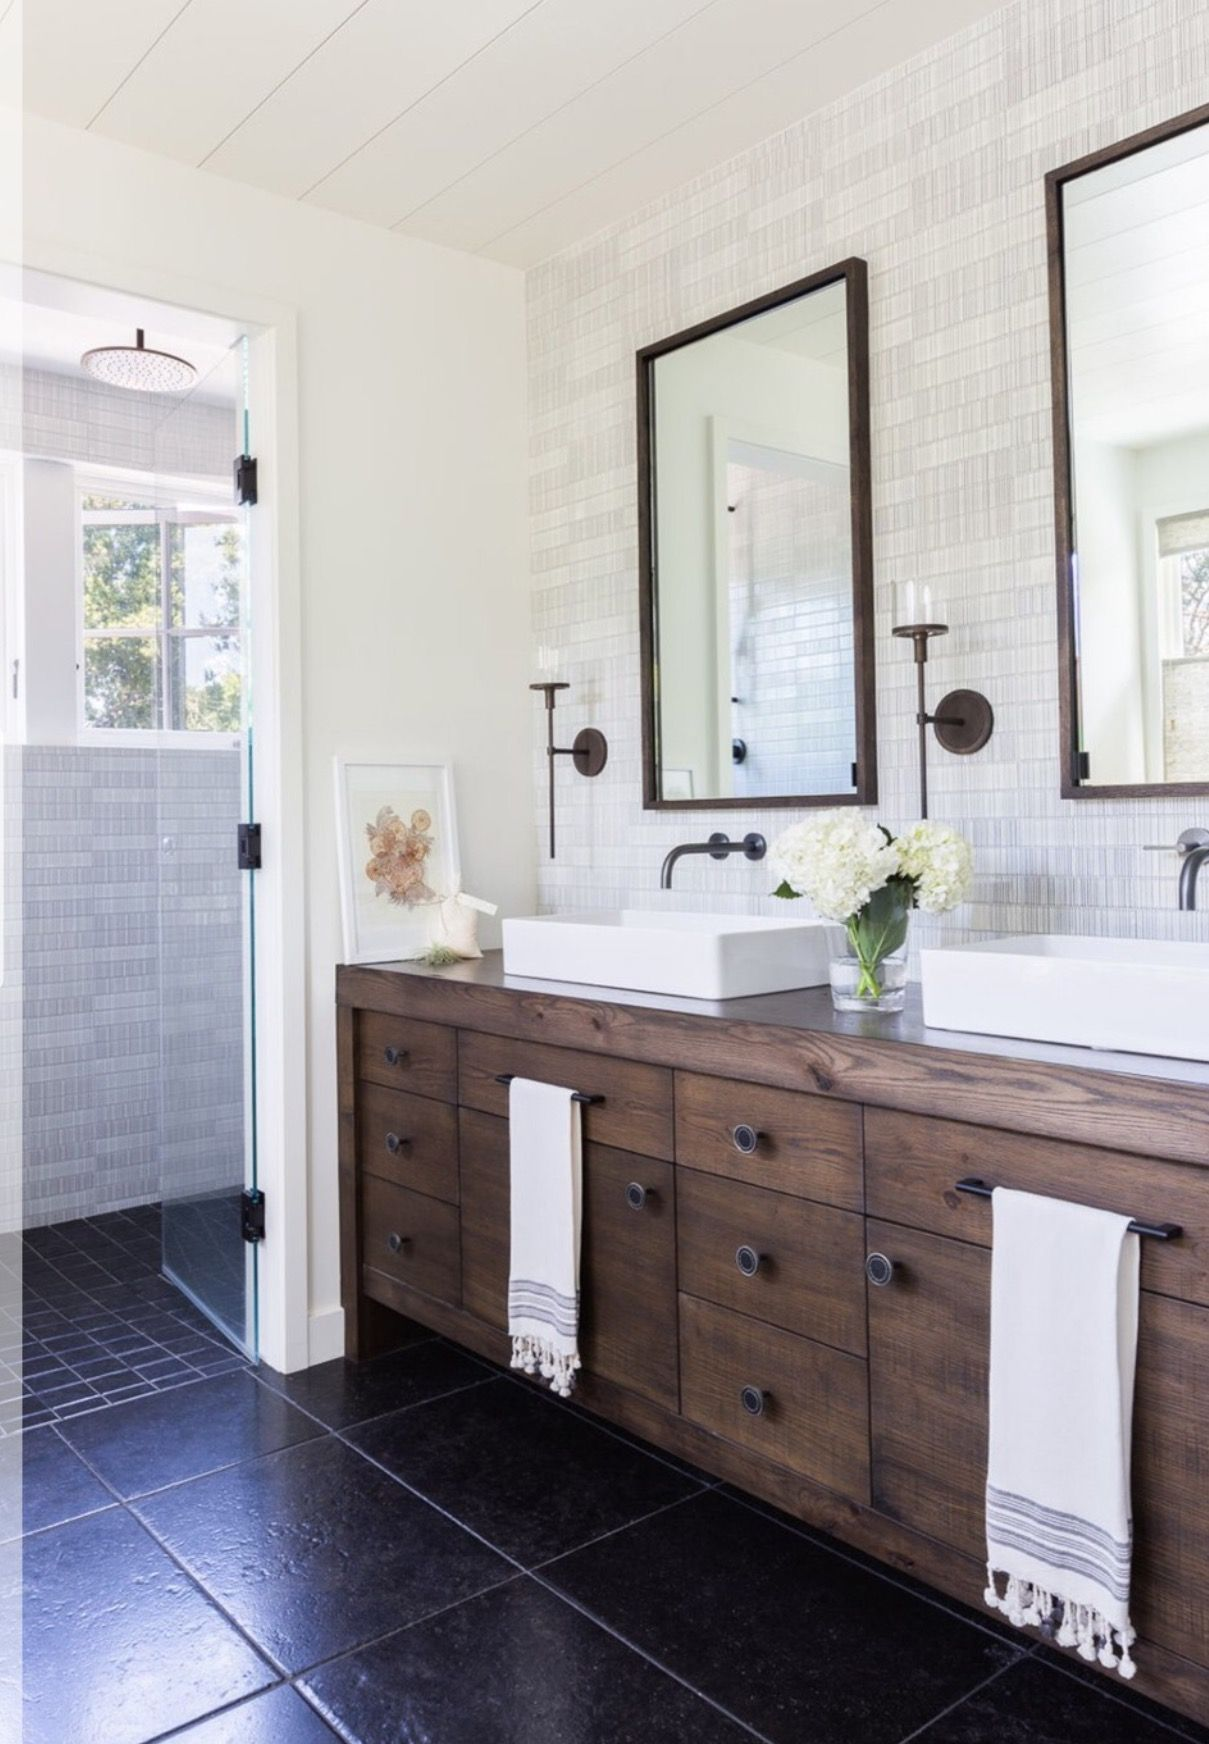 Rustic bathroom, rue mag (With images) Rustic master